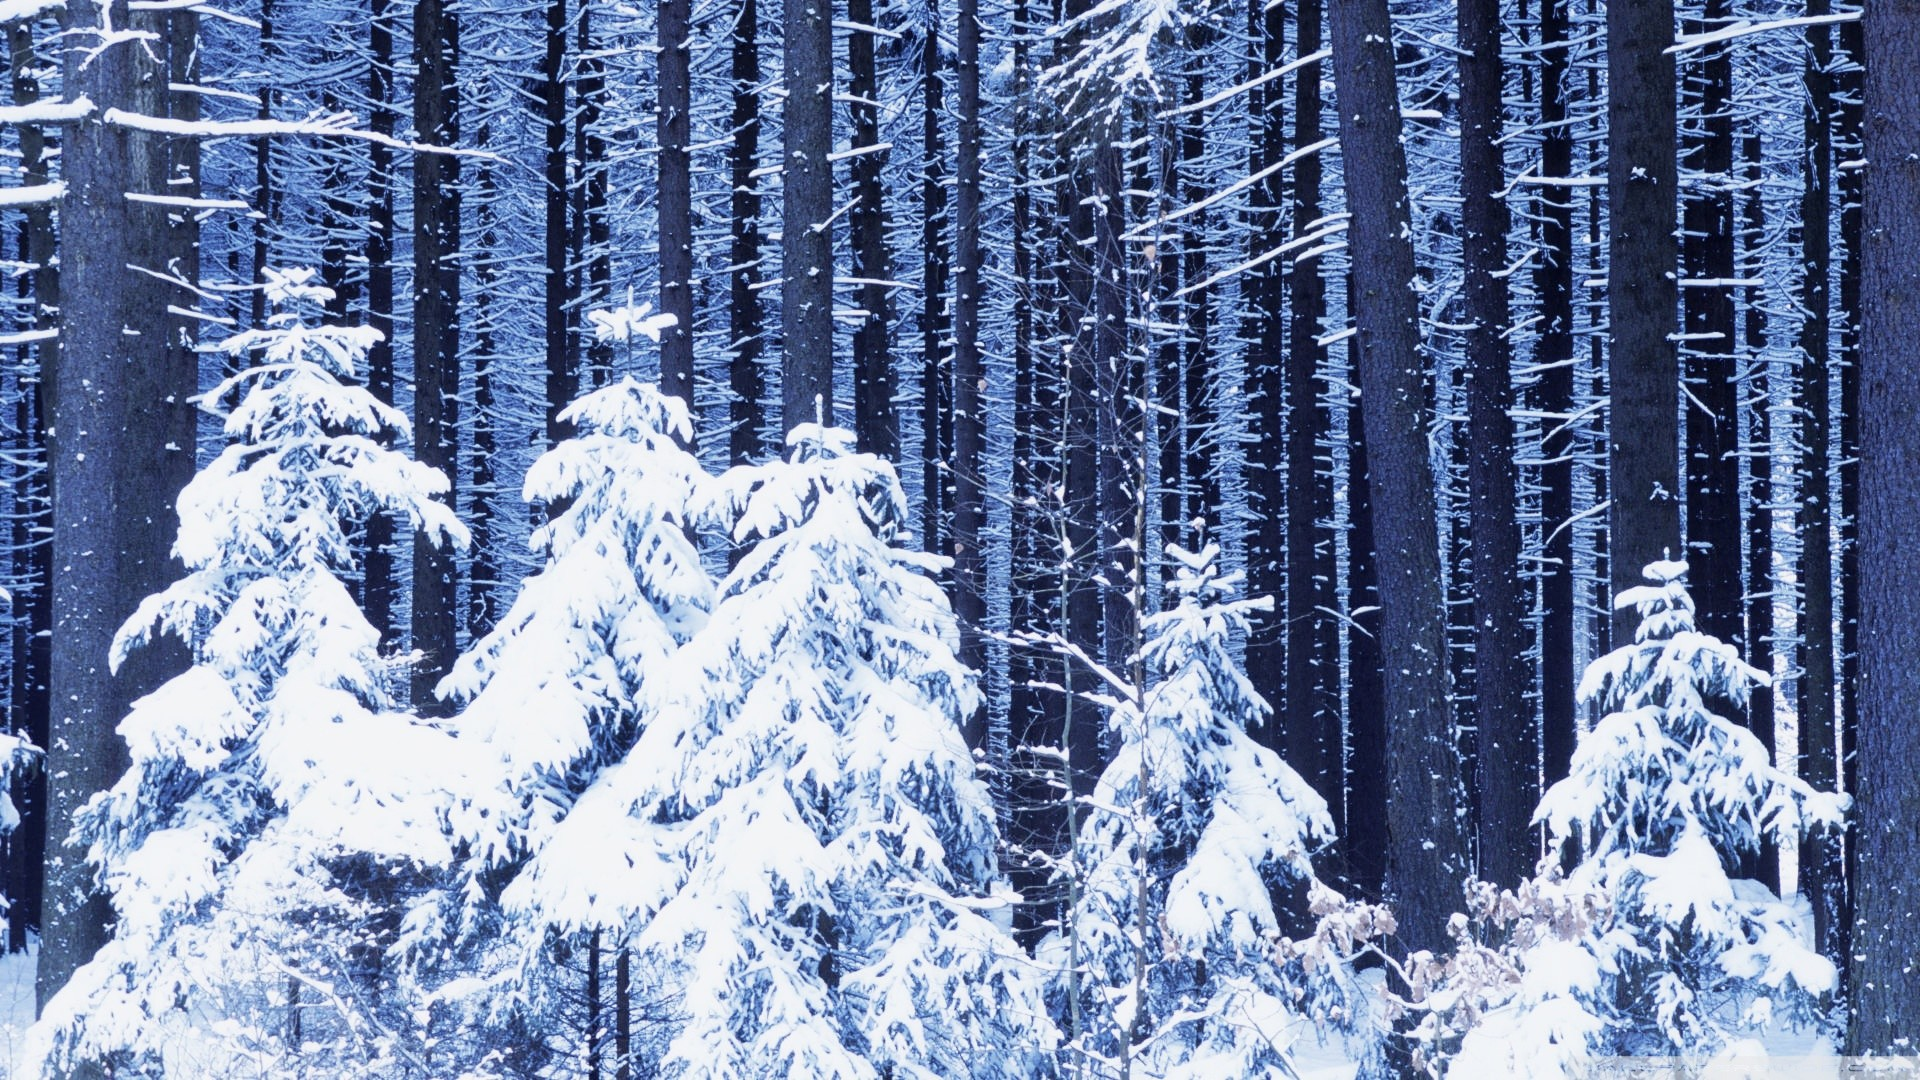 Winter Forest Wallpaper 62 Images